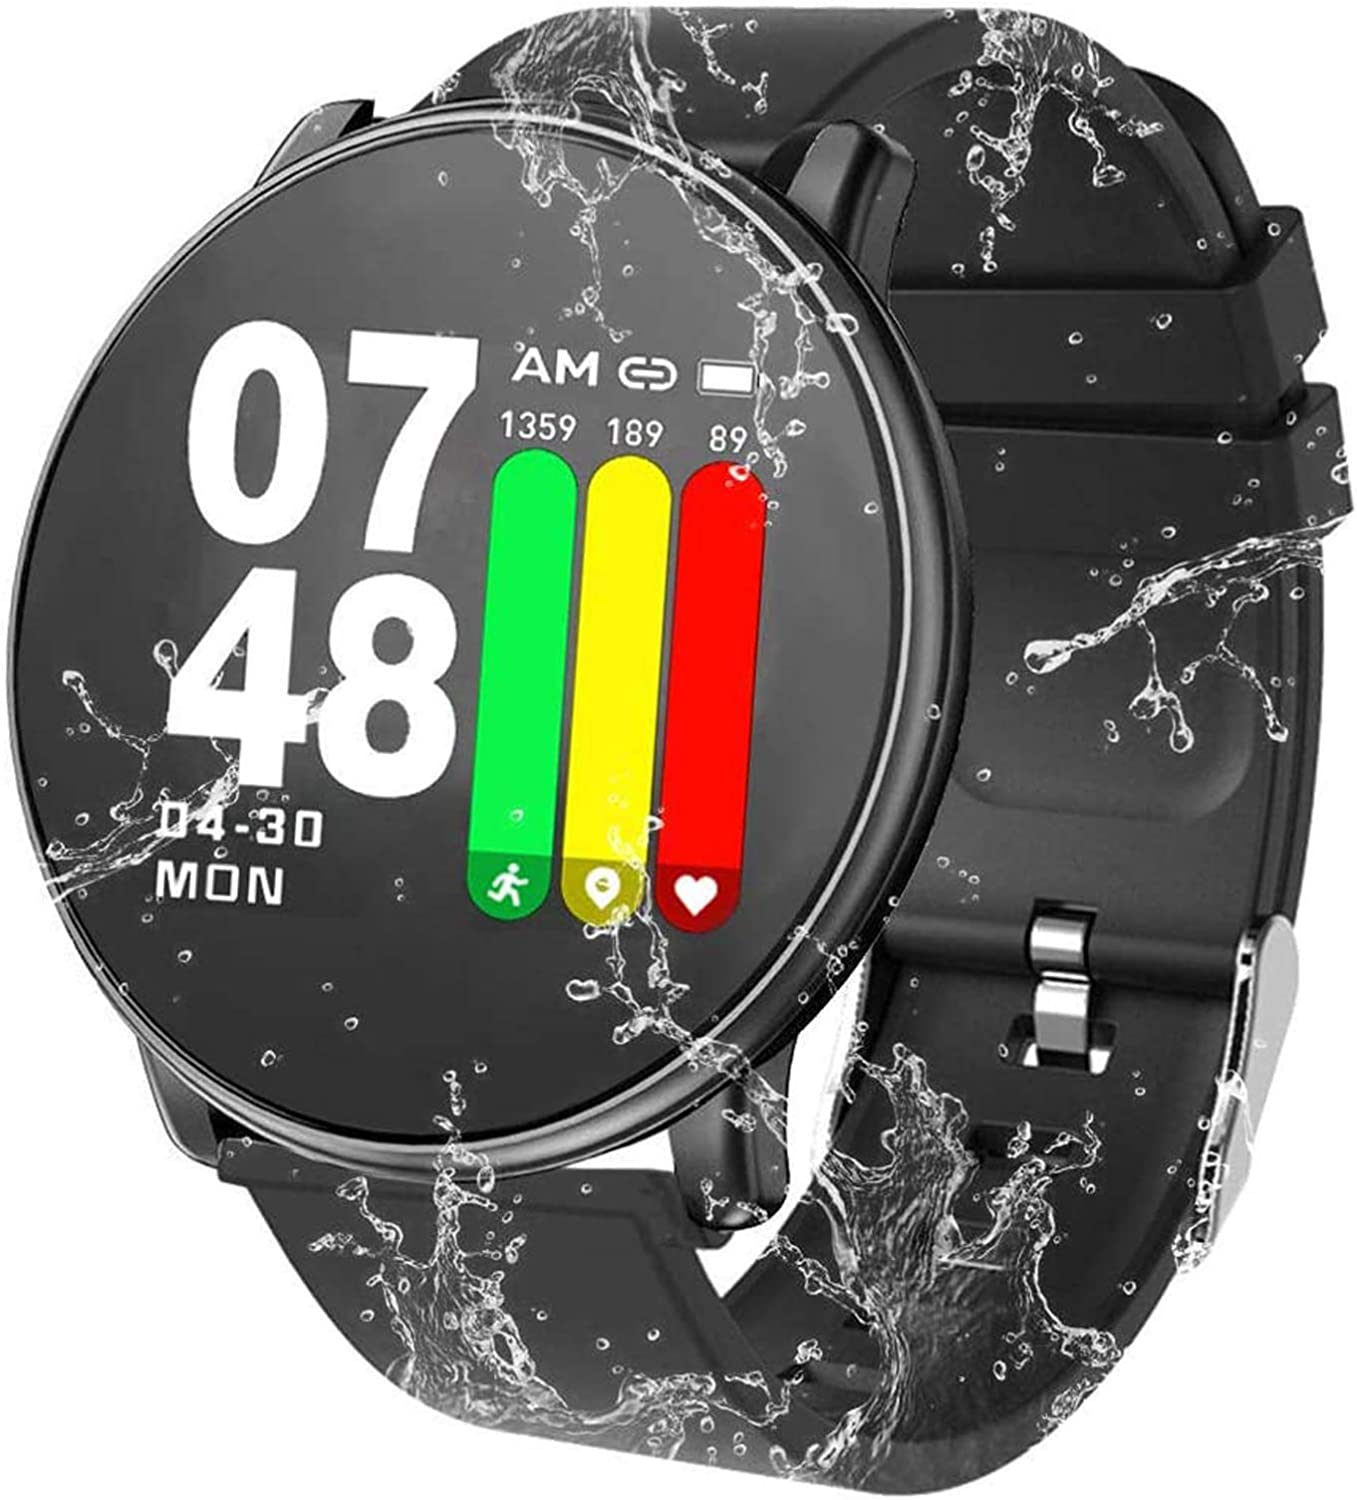 Smart Watch Water Resistant Fitness Tracker with Heart Rate Monitor Sleep Monitor Calorie Pedometer Long Battery Life Compatible with Android & iOS Smartphones for Men Women Kids